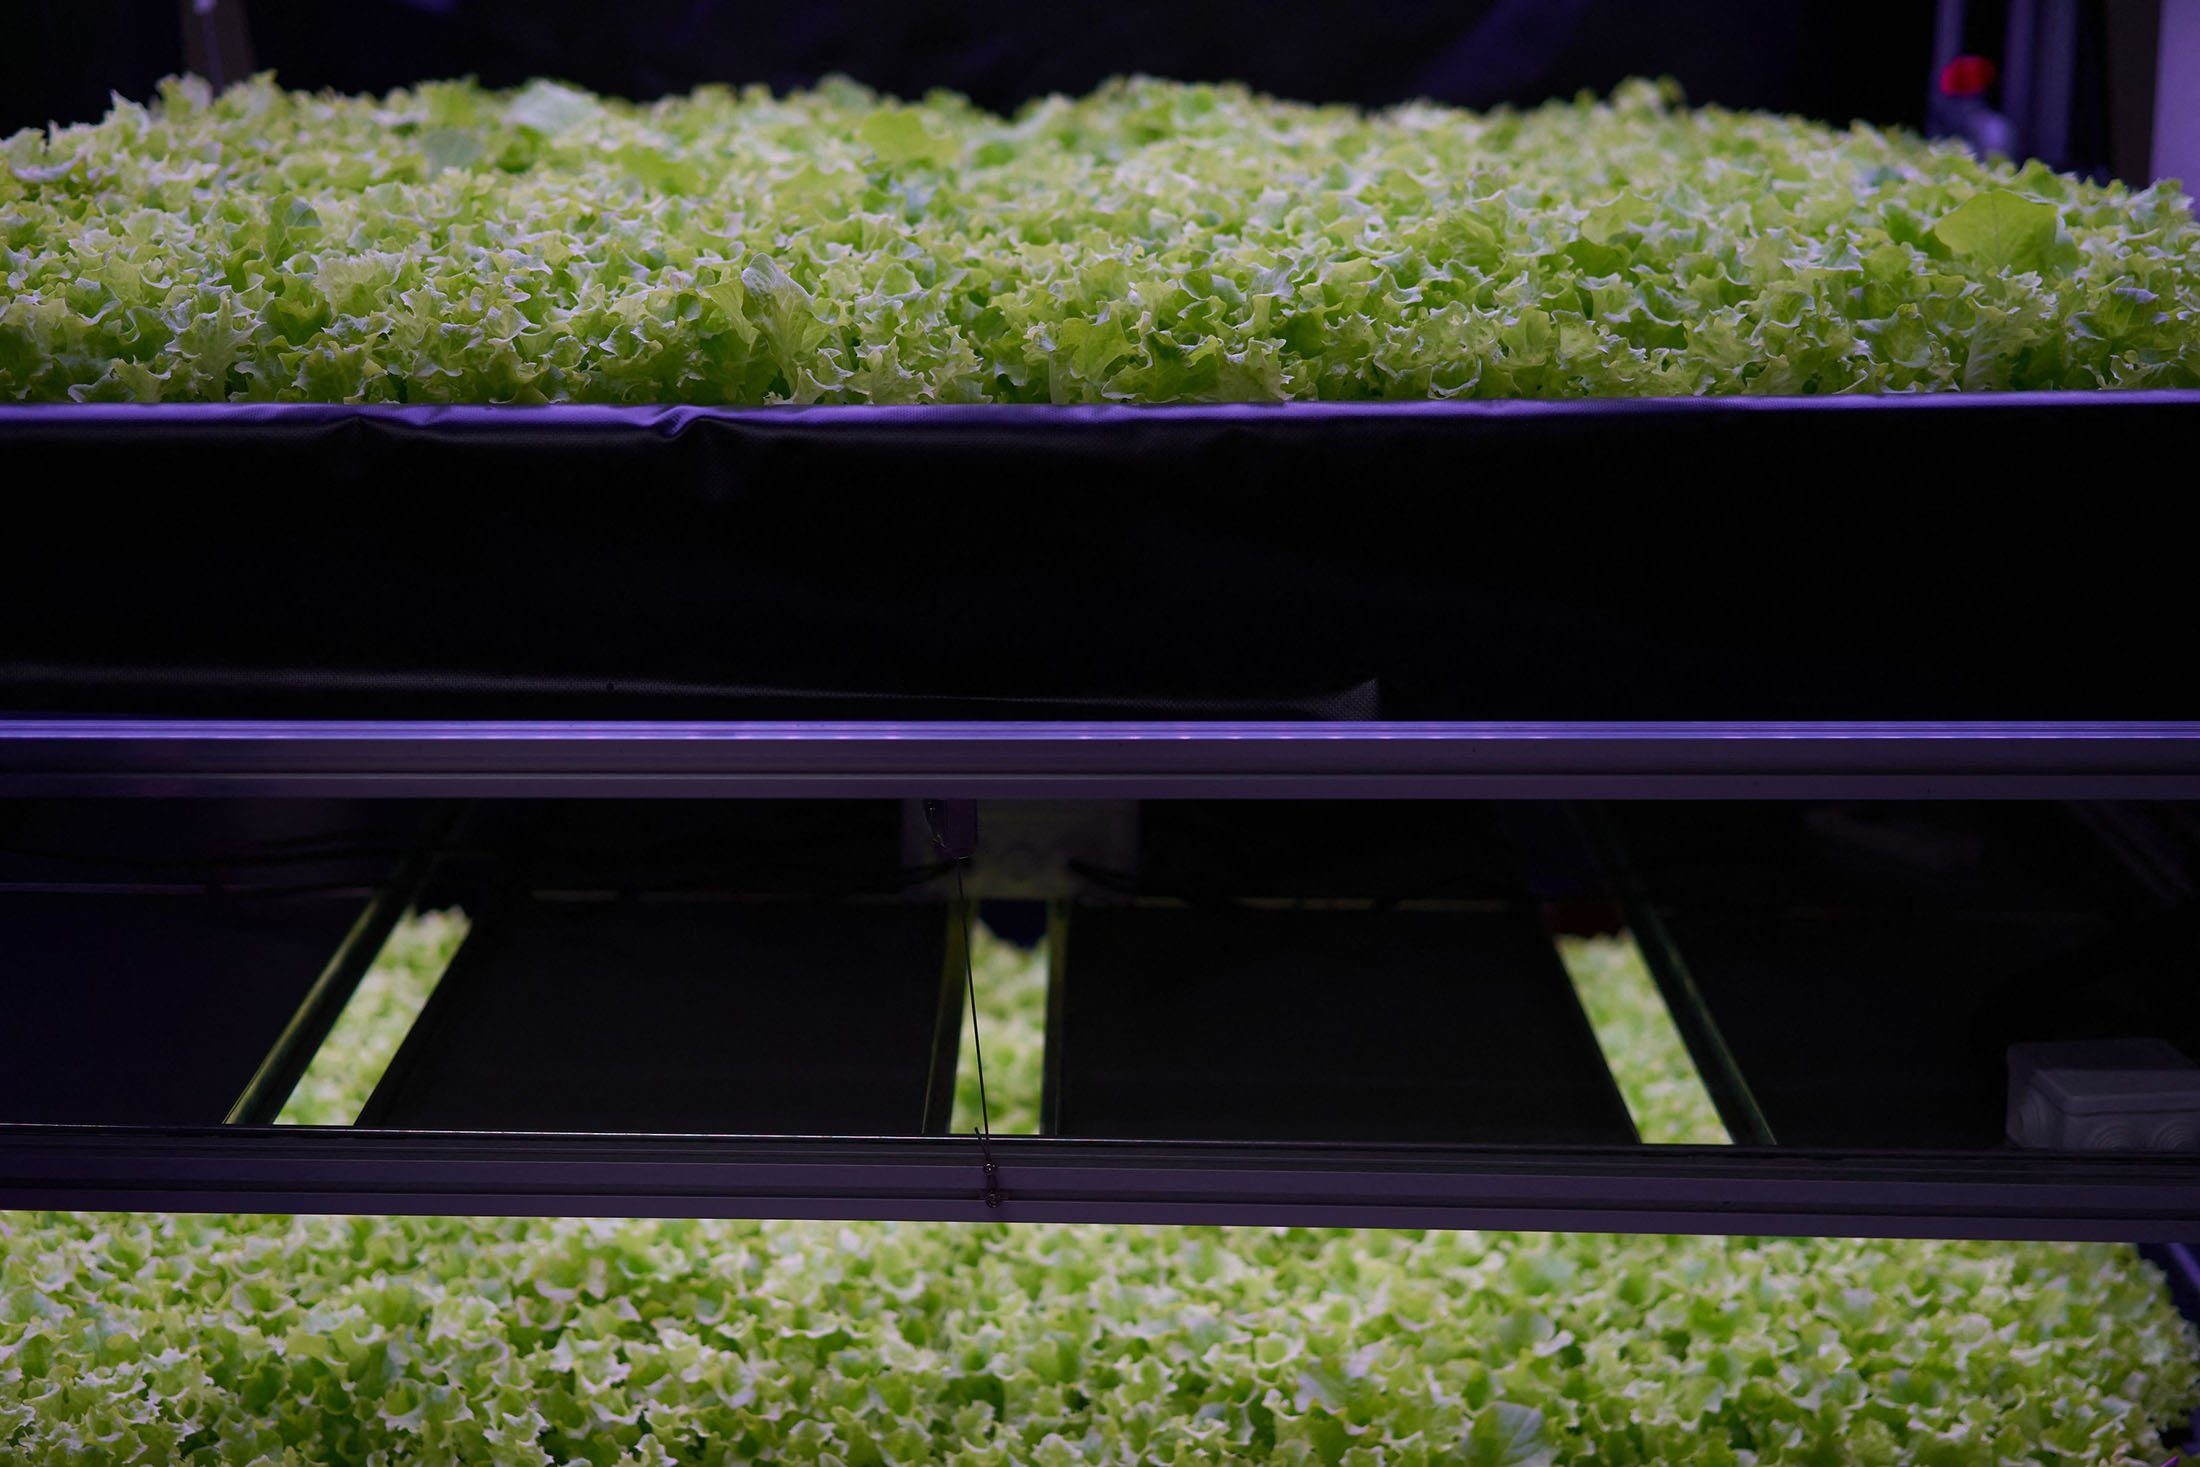 """Salad is cultivated at the vertical plant farm """"Nordic Harvest"""" based in Taastrup, a suburb west of Copenhagen, Denmark, Nov. 20, 2020. (AFP Photo)"""